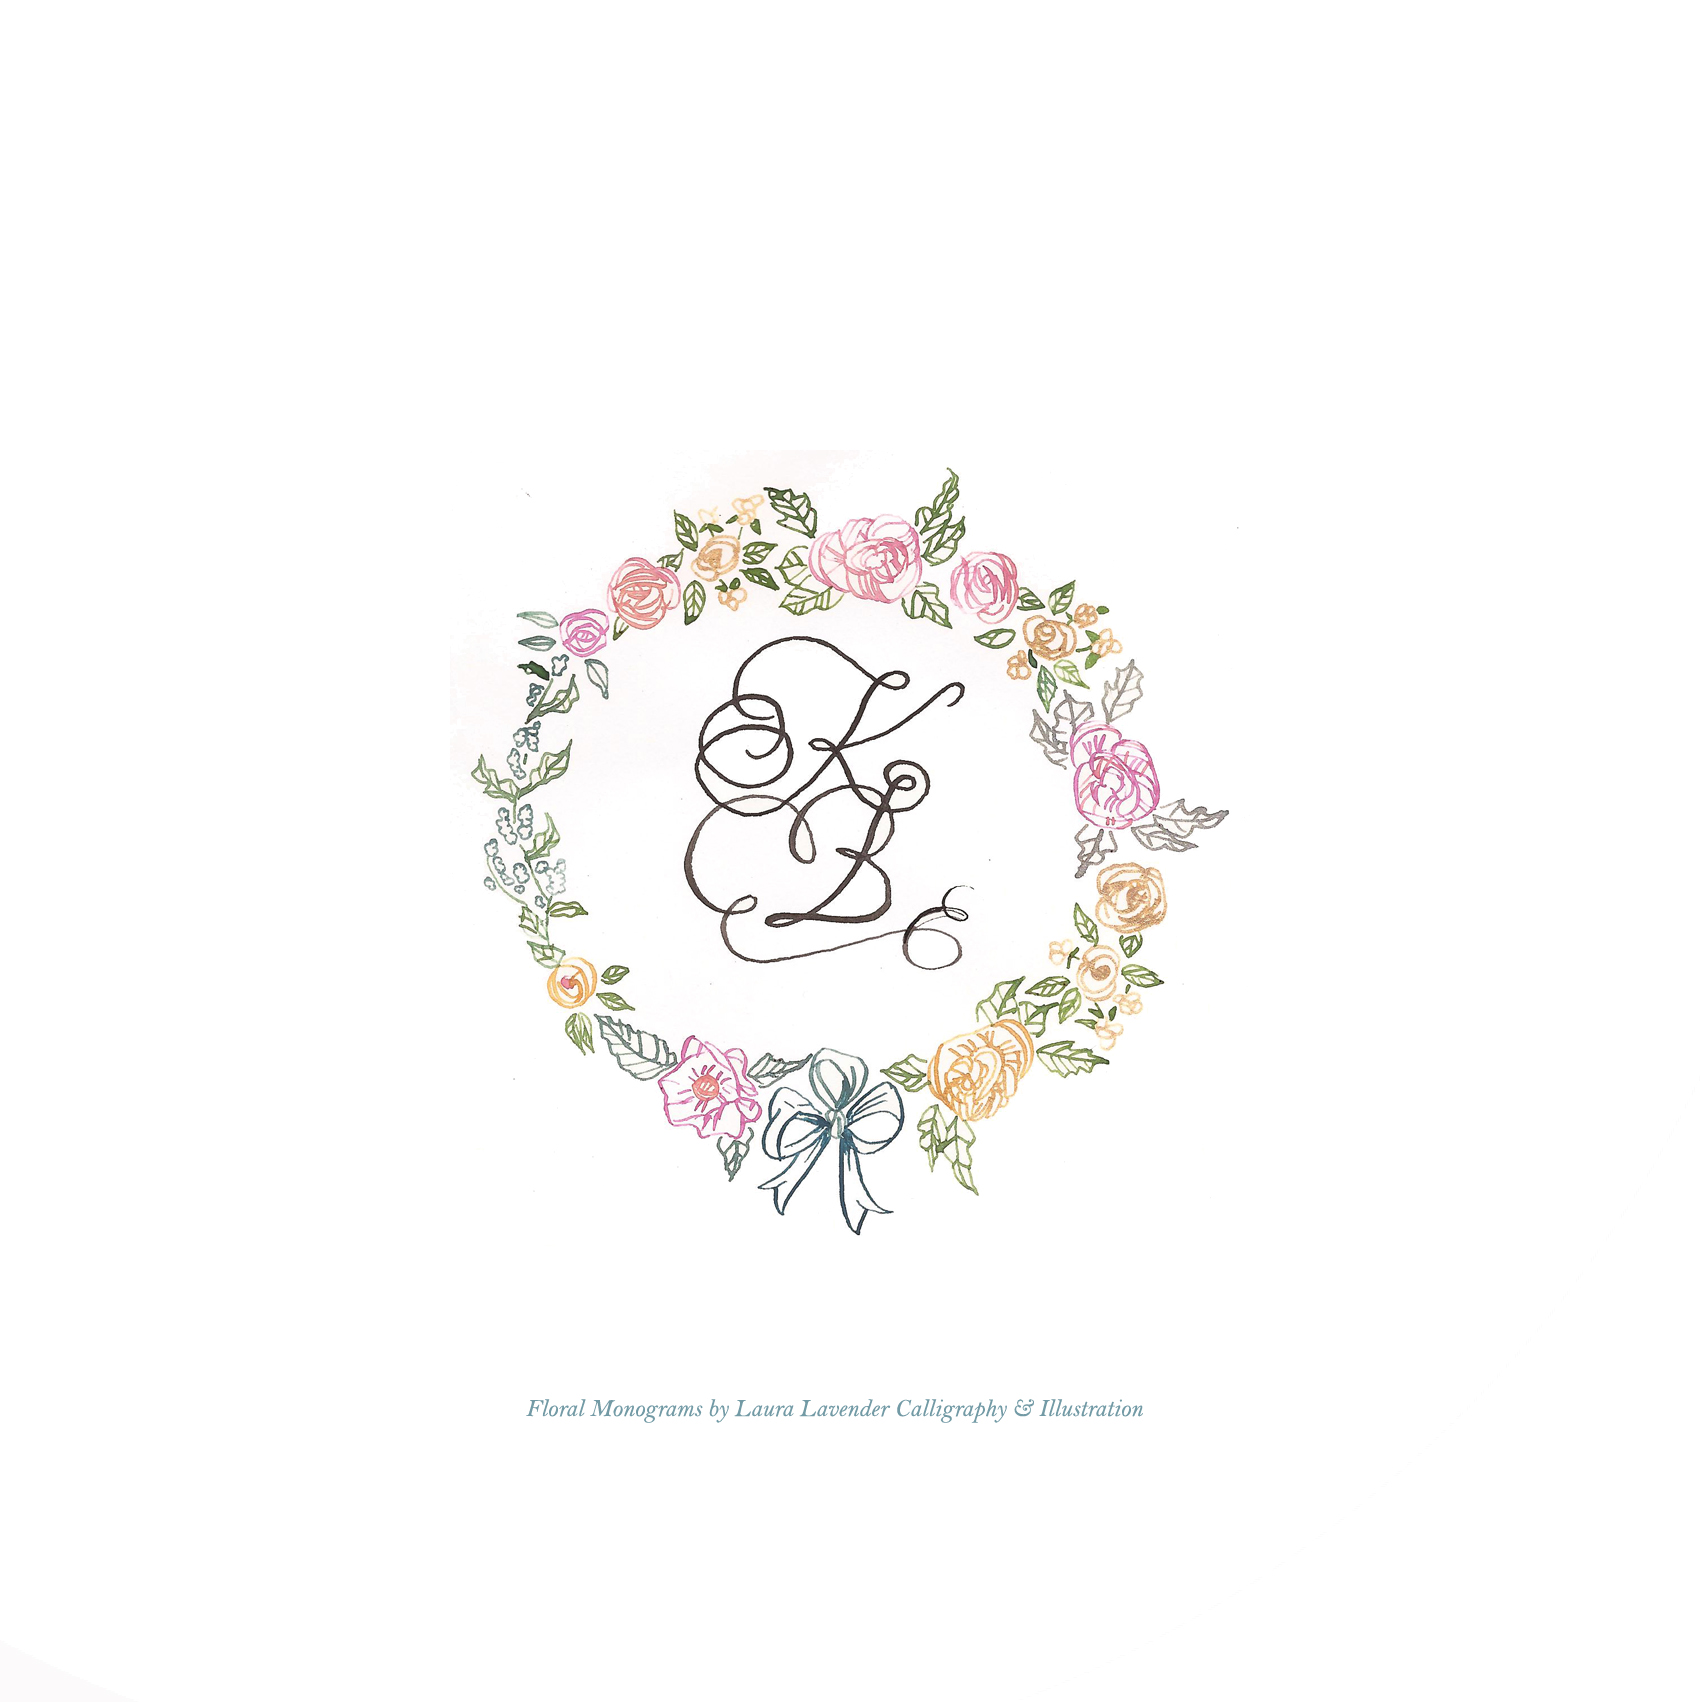 calligraphy hand lettered flower monogram laura lavender